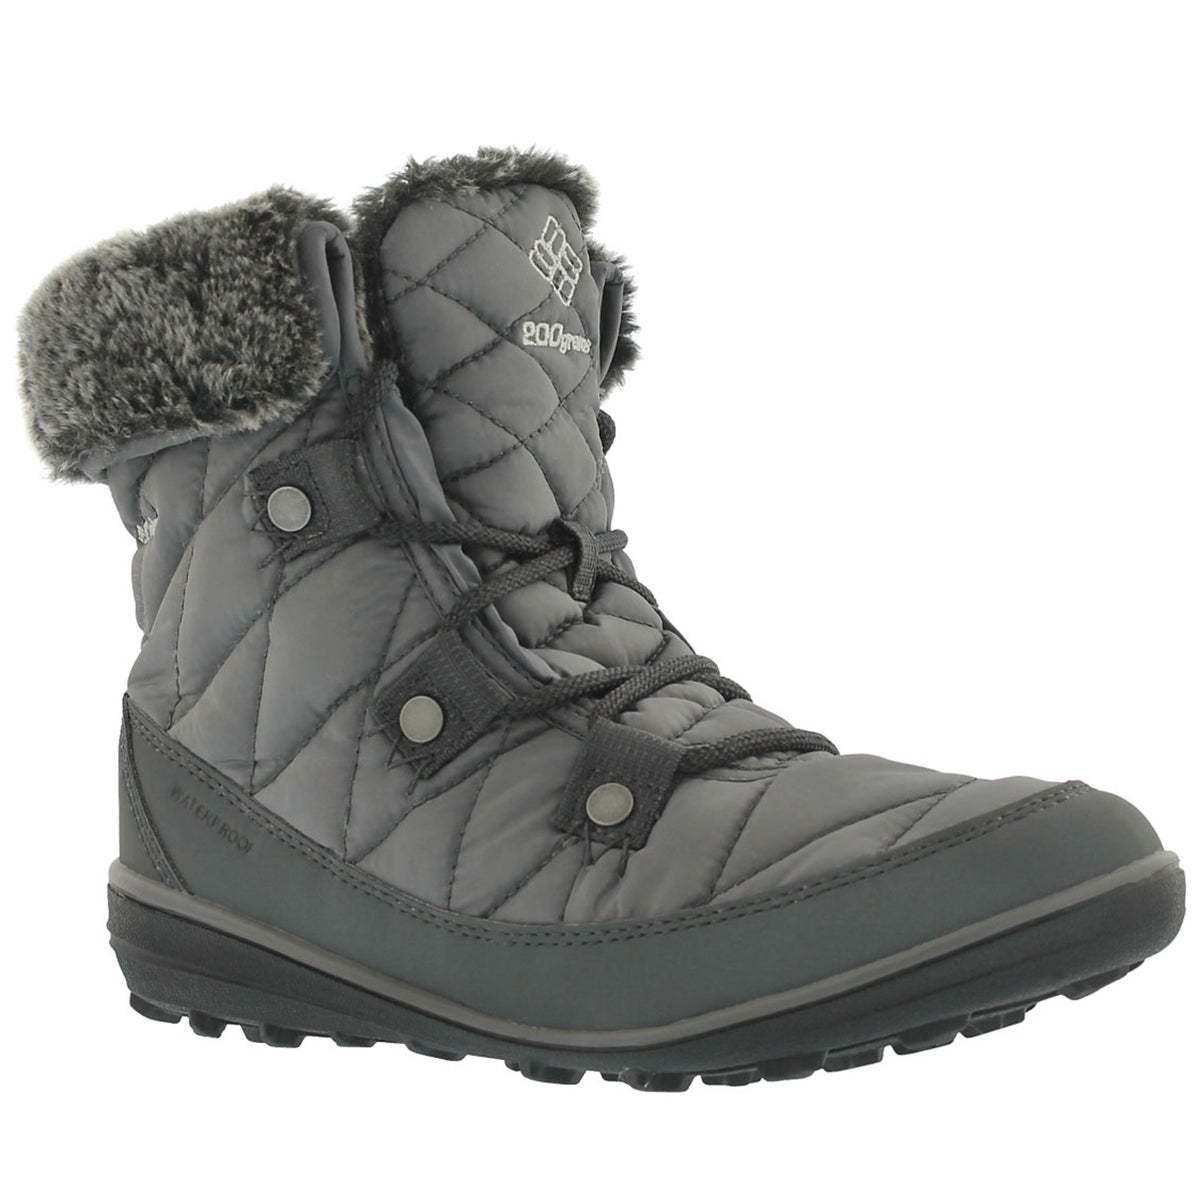 Lds Heavenly Shorty OmniHeat quarry boot